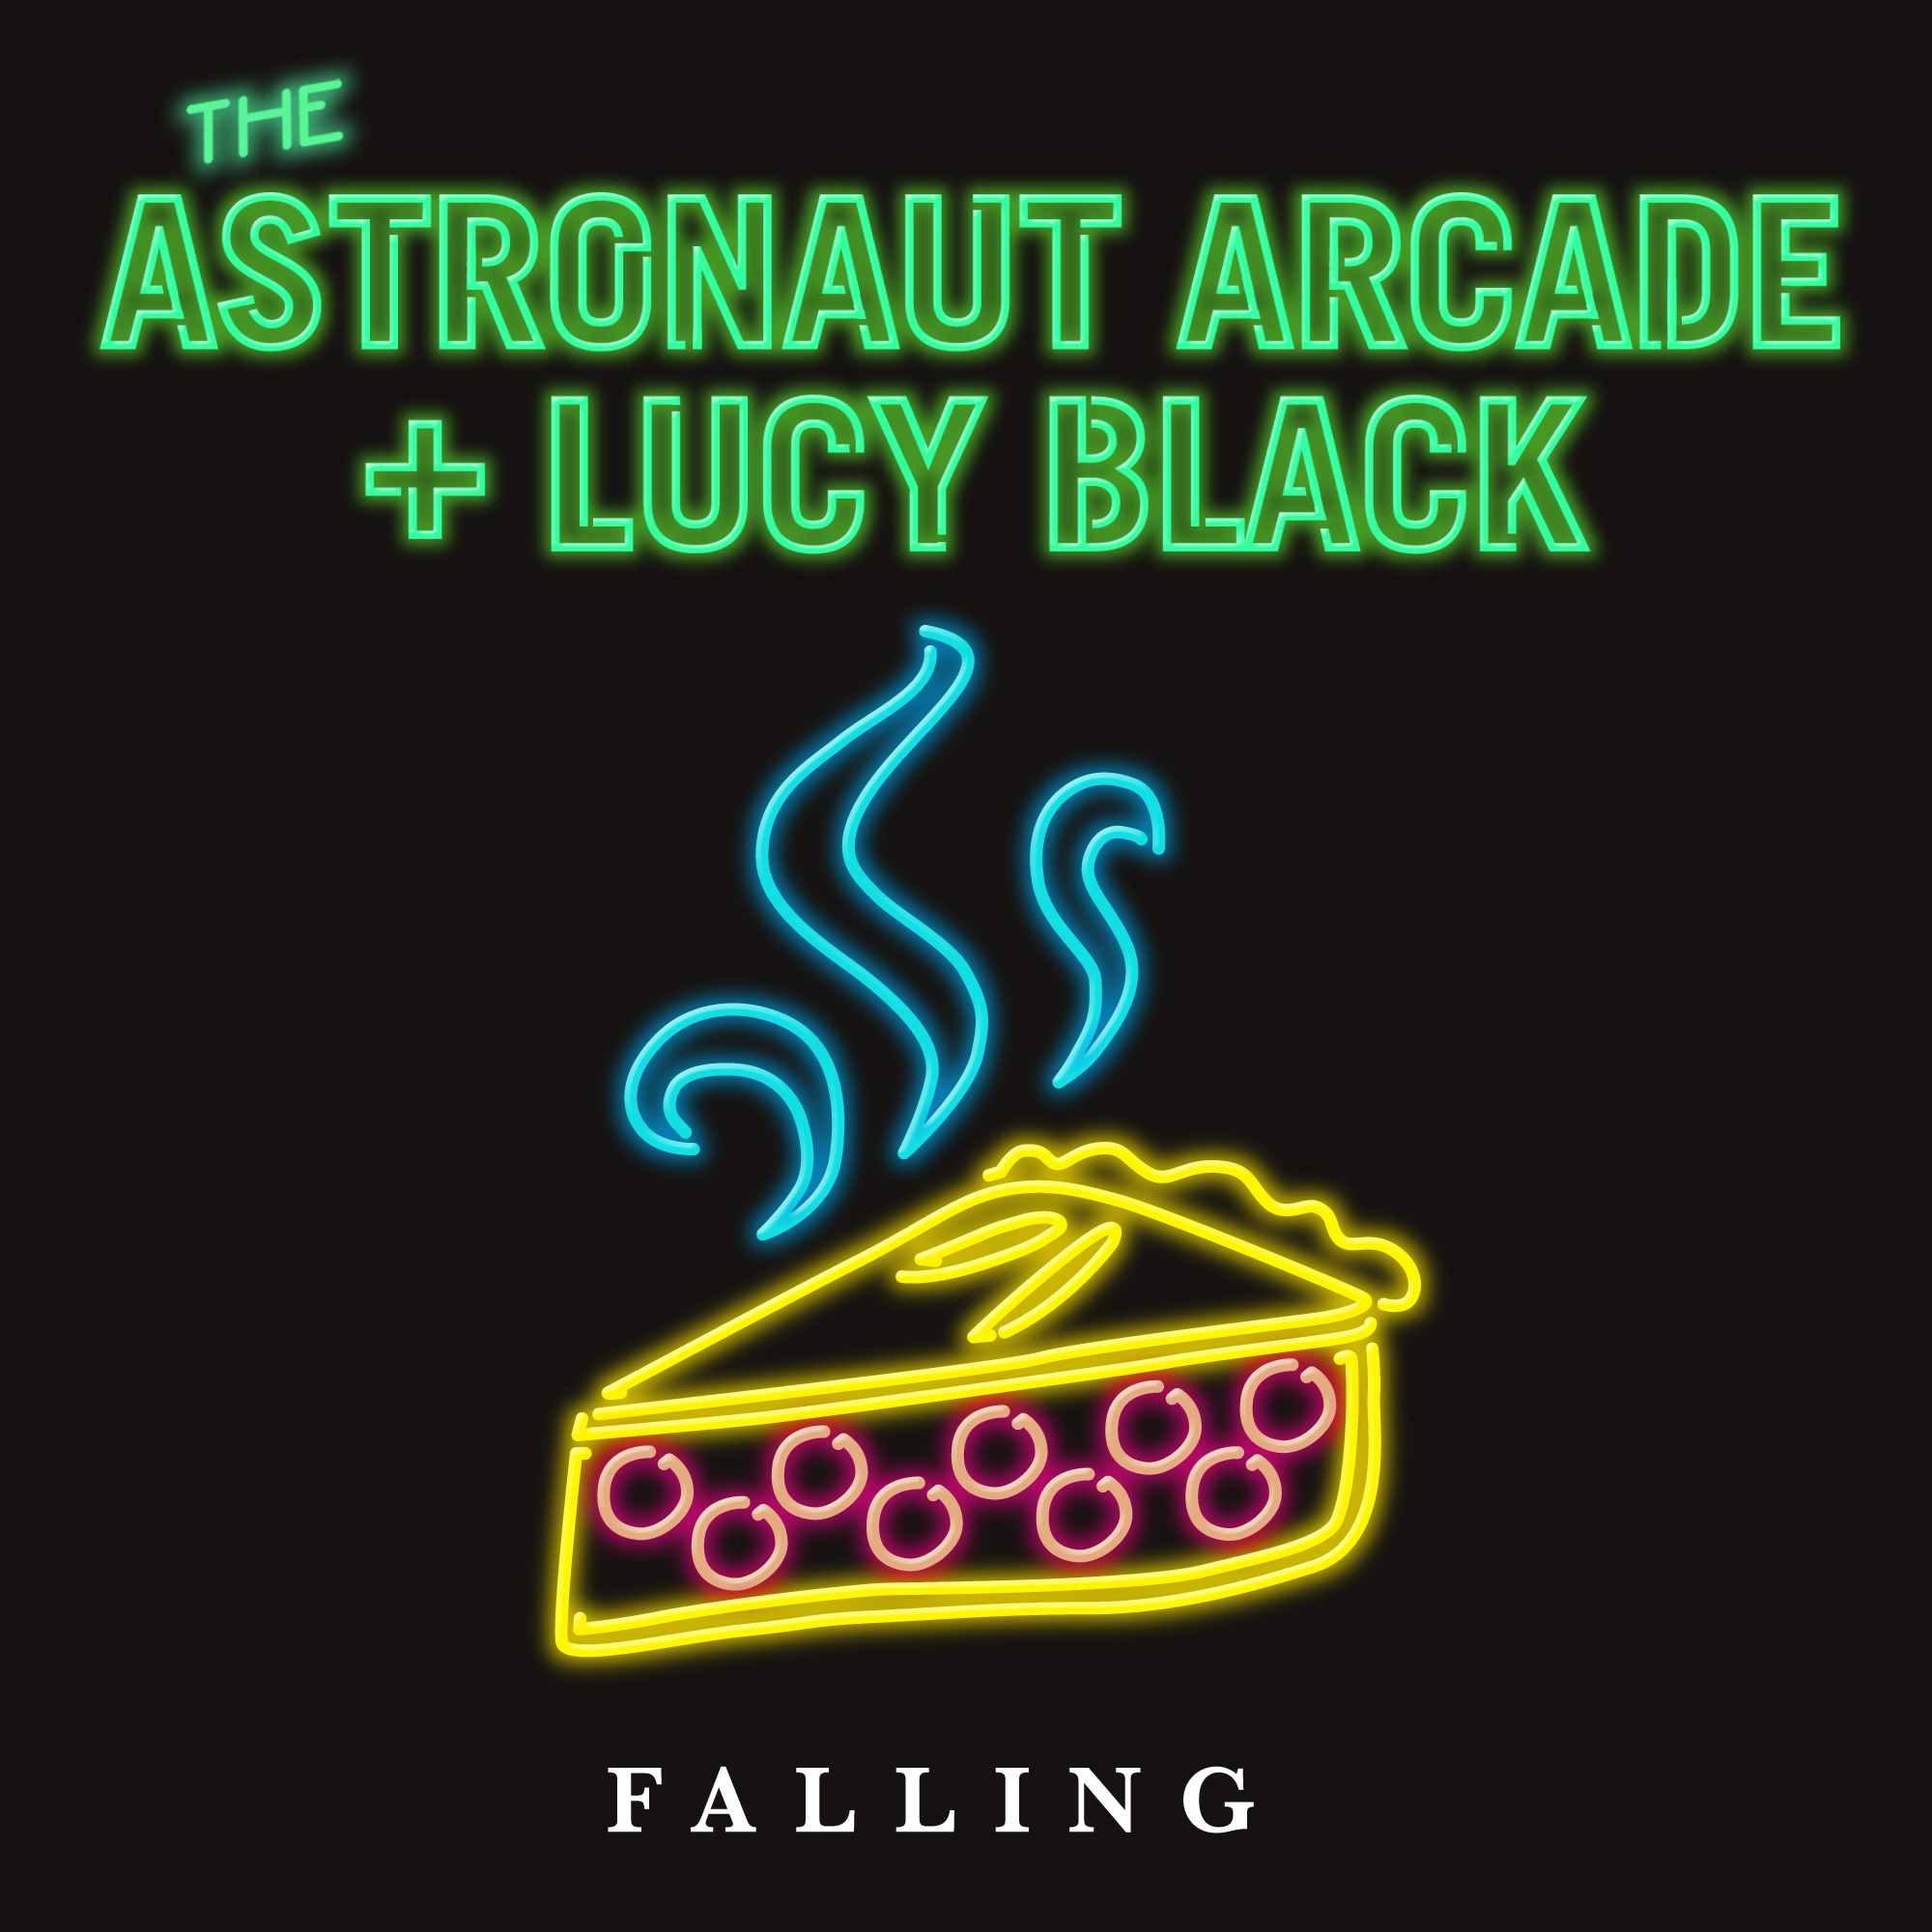 The Astronaut Arcade feat. Lucy Black - Falling